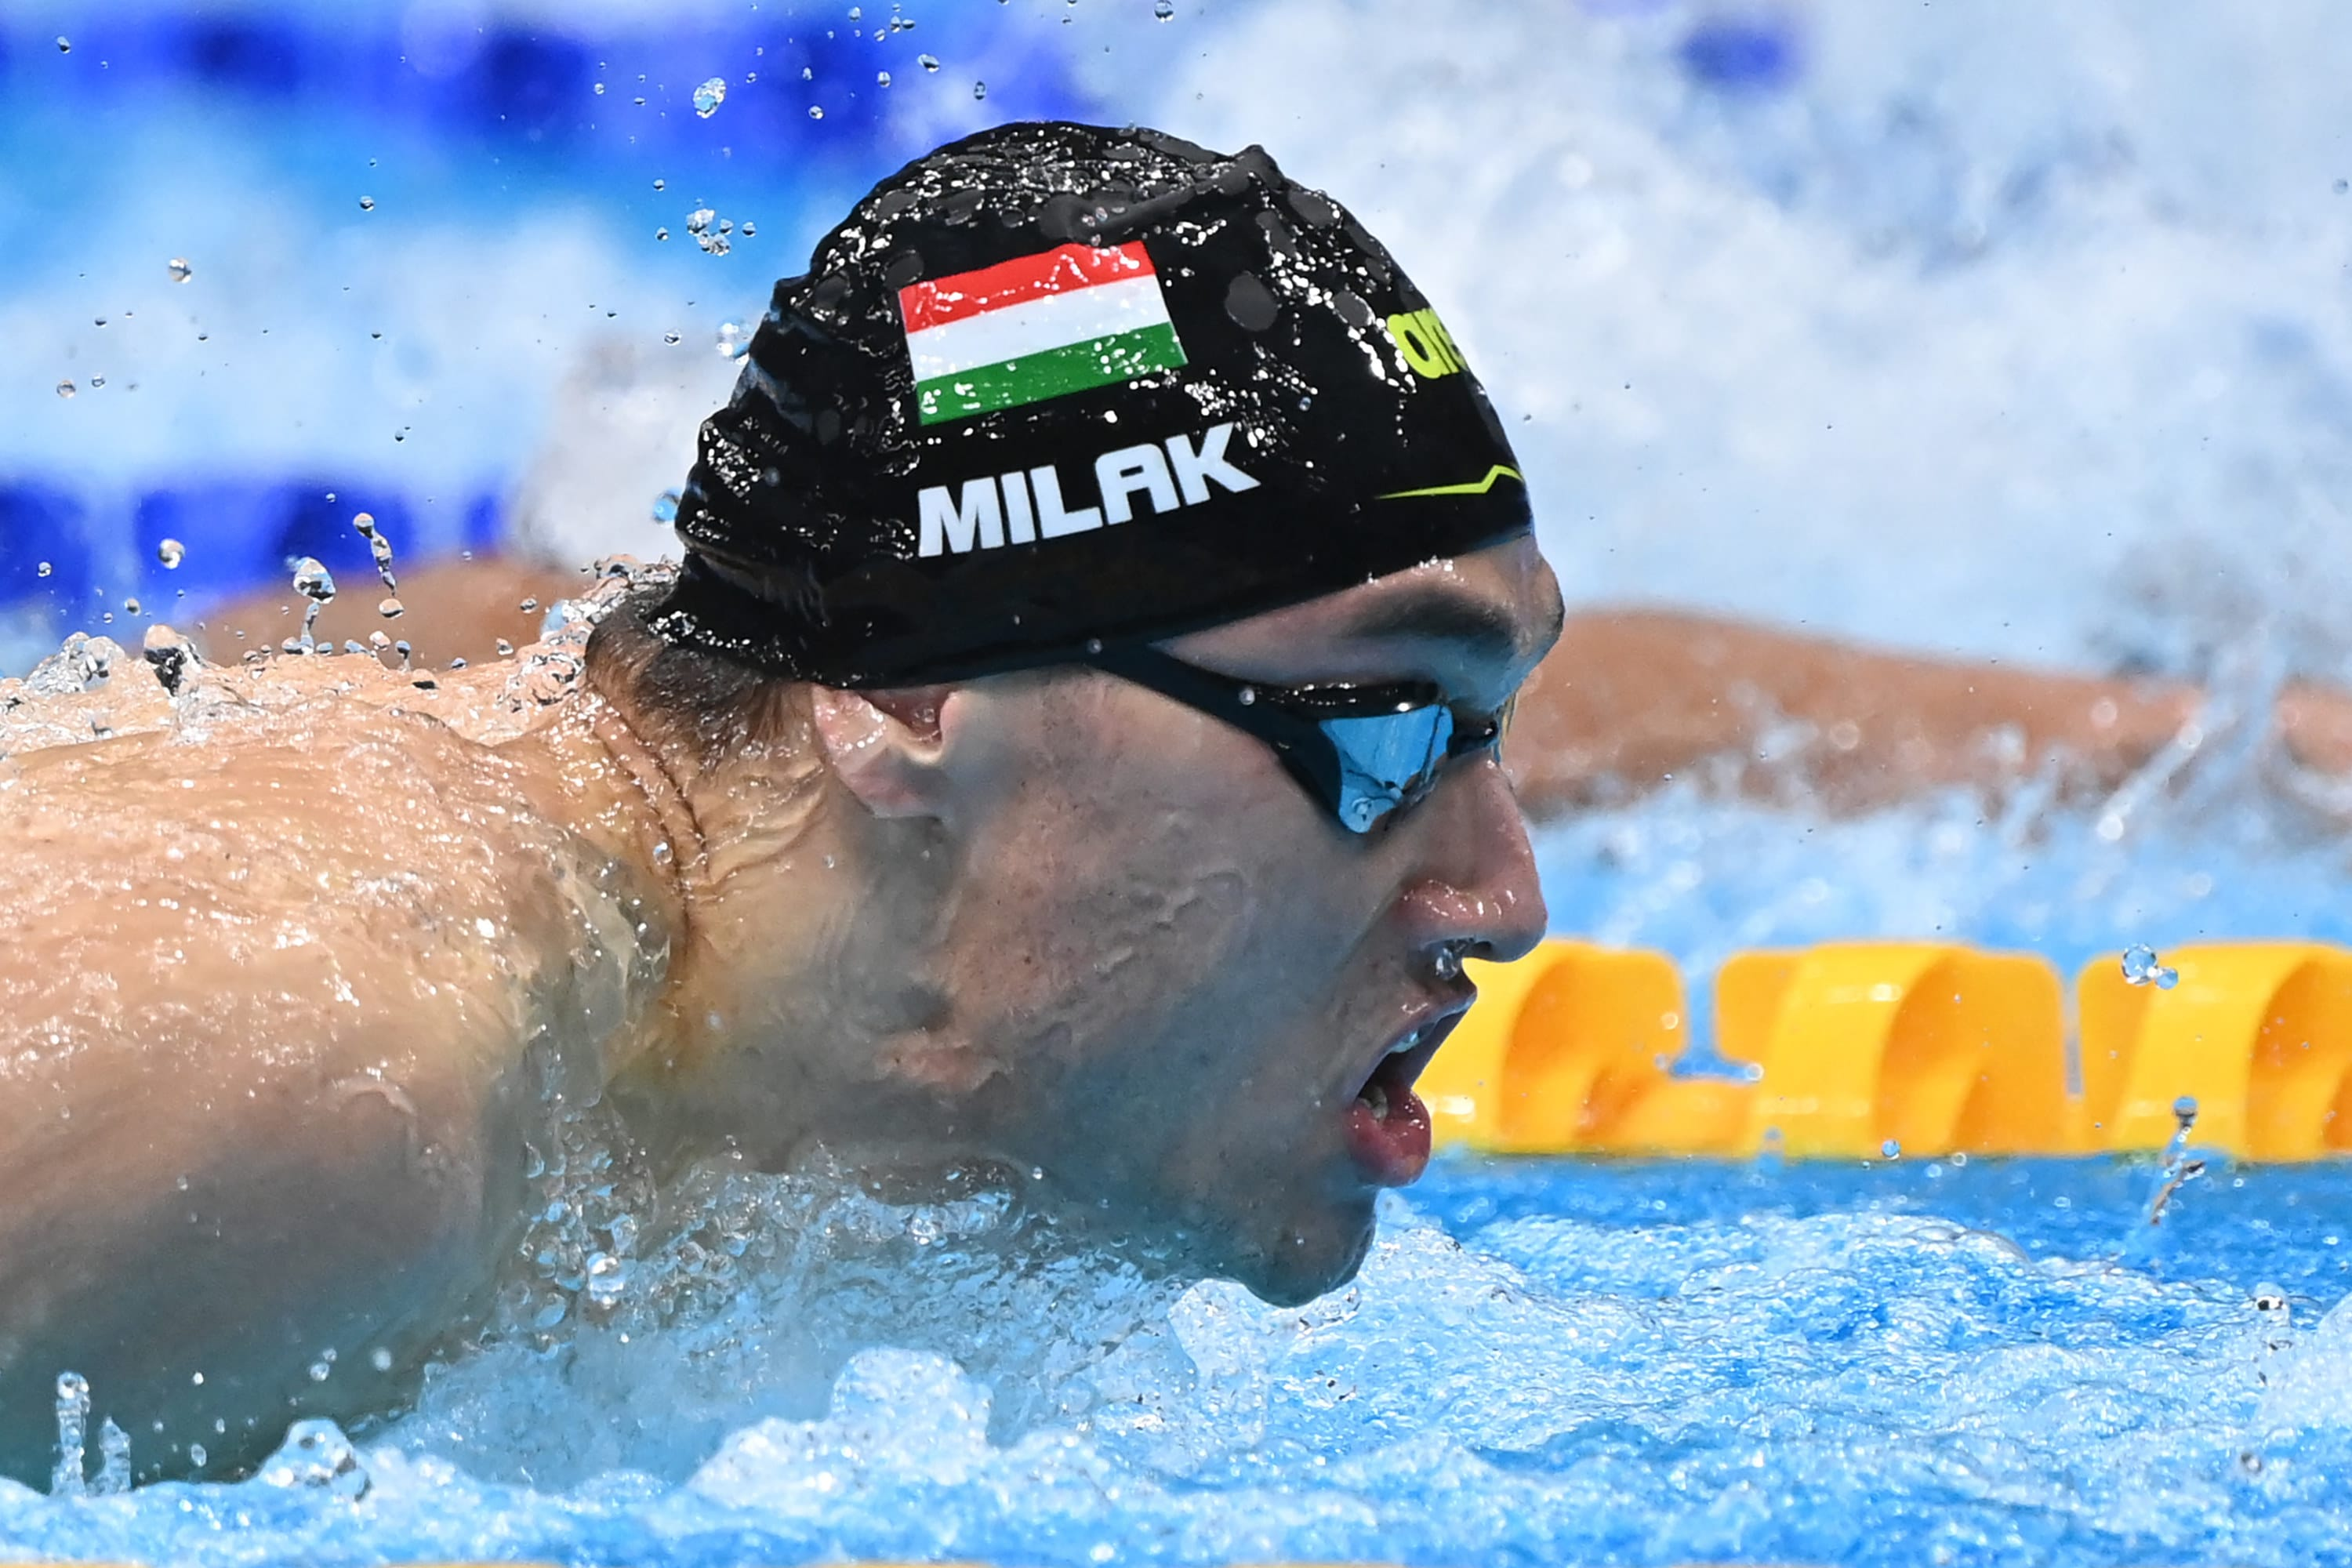 A Hungarian swimmer in the pool during a race